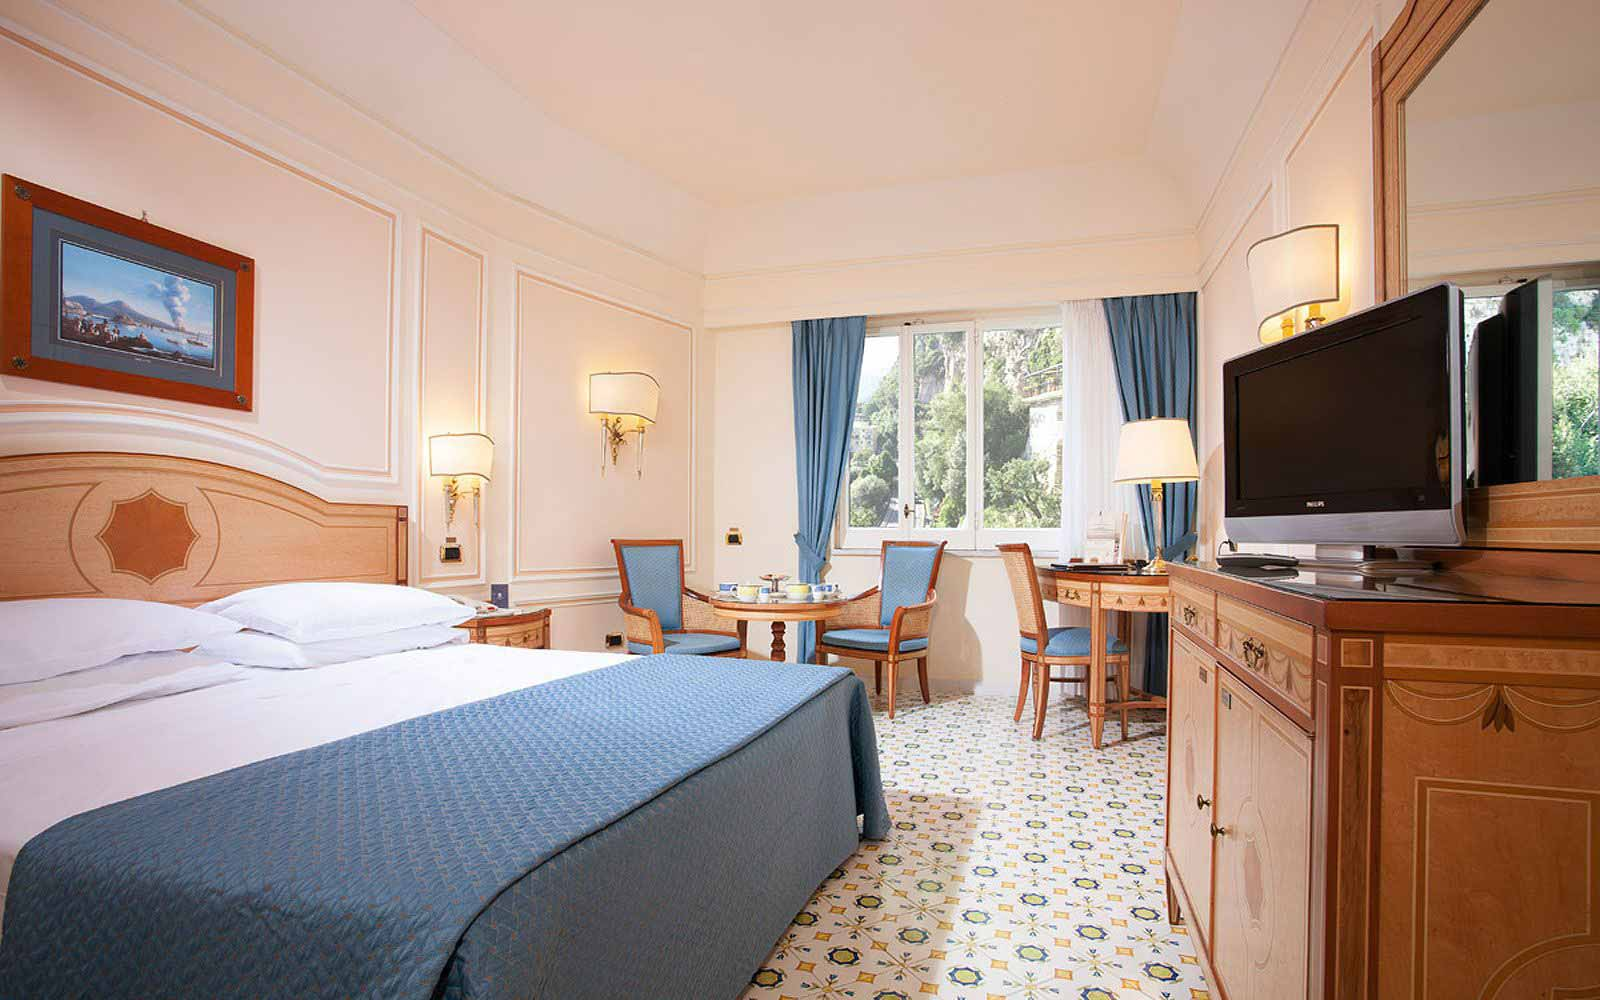 Standard Room at the Grand Hotel Capodimonte